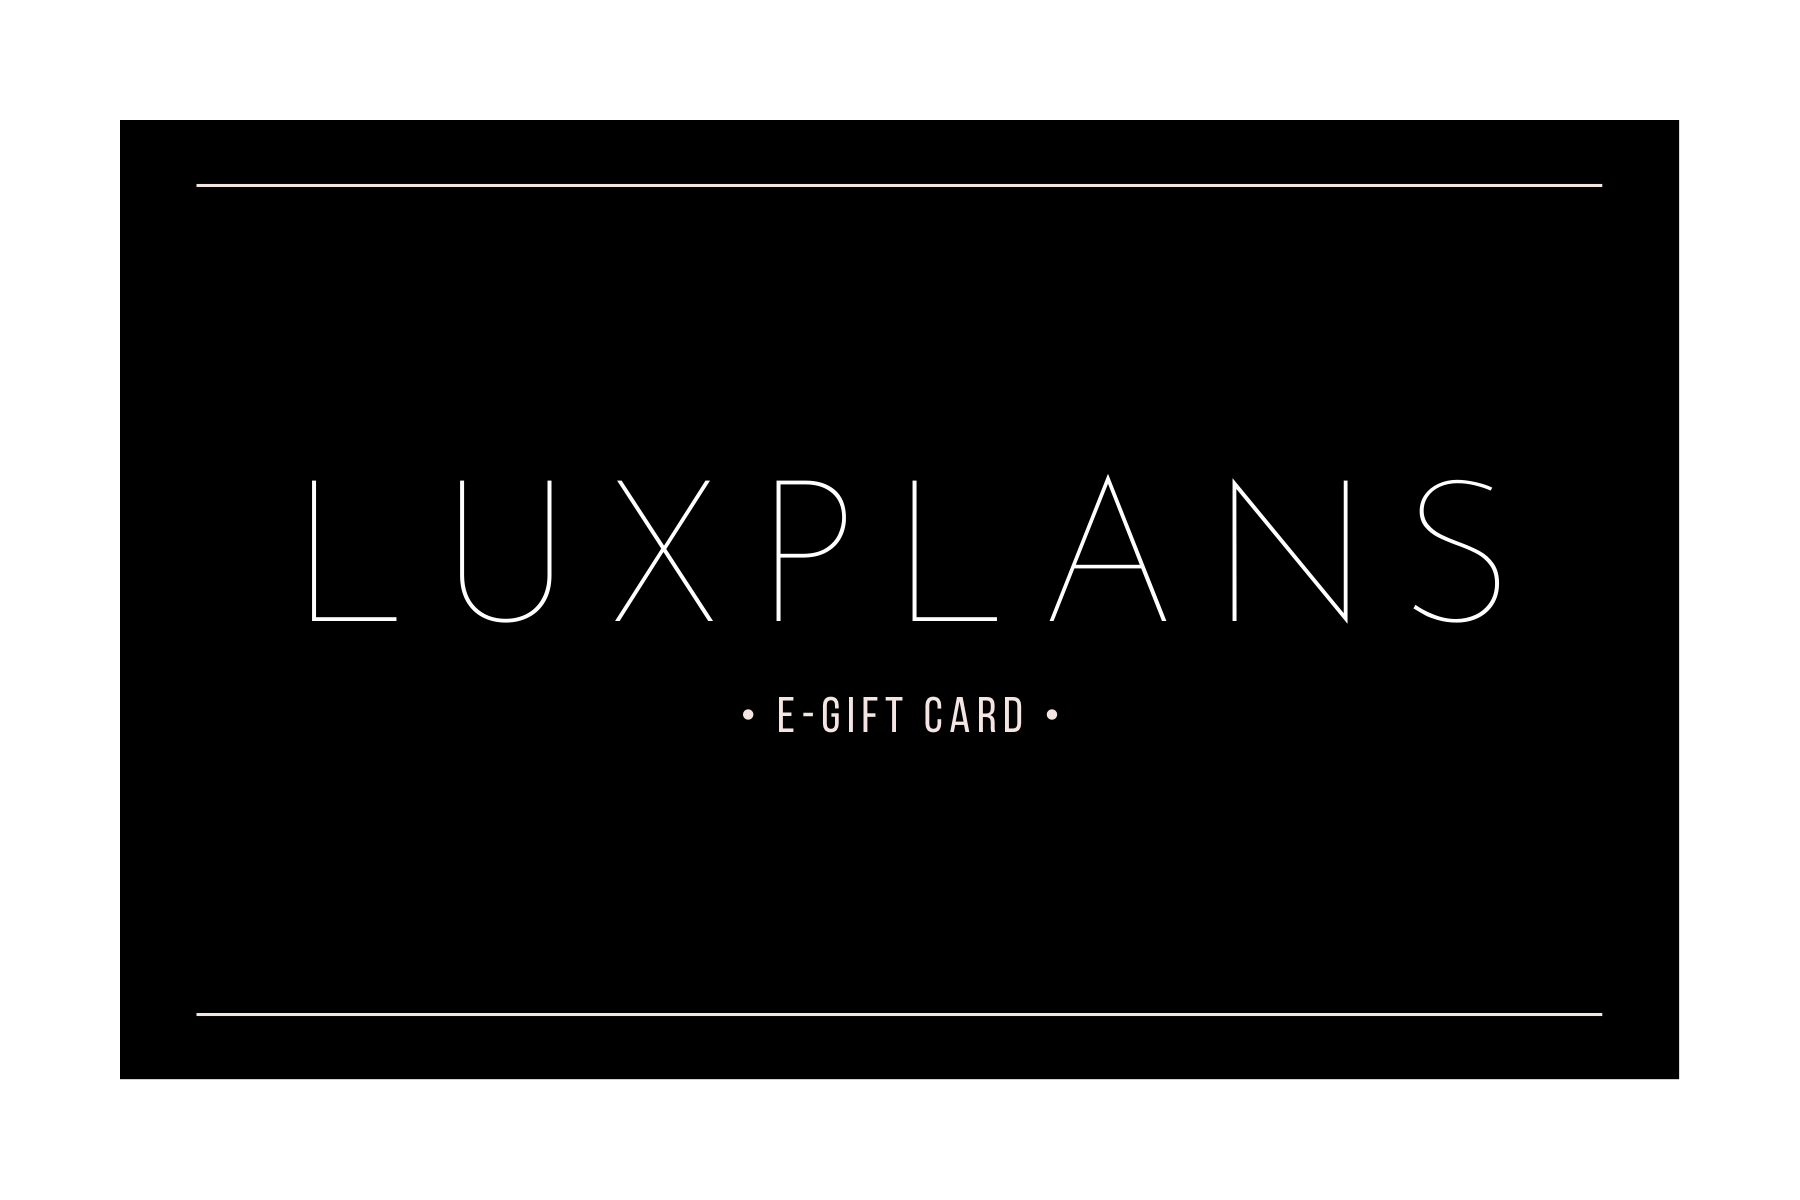 LUXPLANS eGift Card